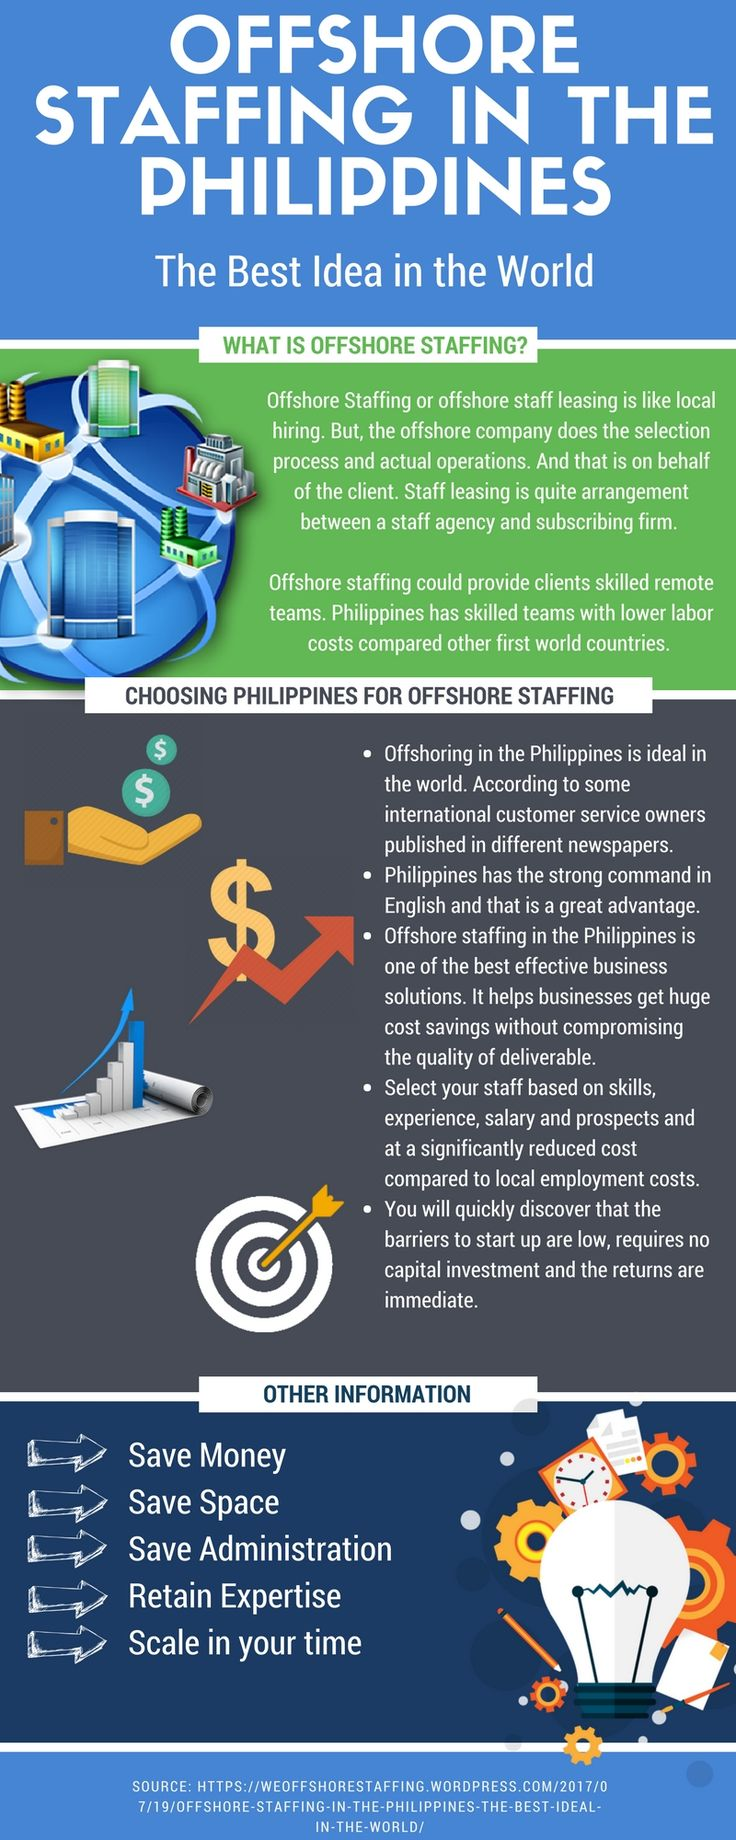 Offshoring in the Philippines is ideal in the world. Offshore staffing in the Philippines has the highest literacy rates in the world (92.6 %).